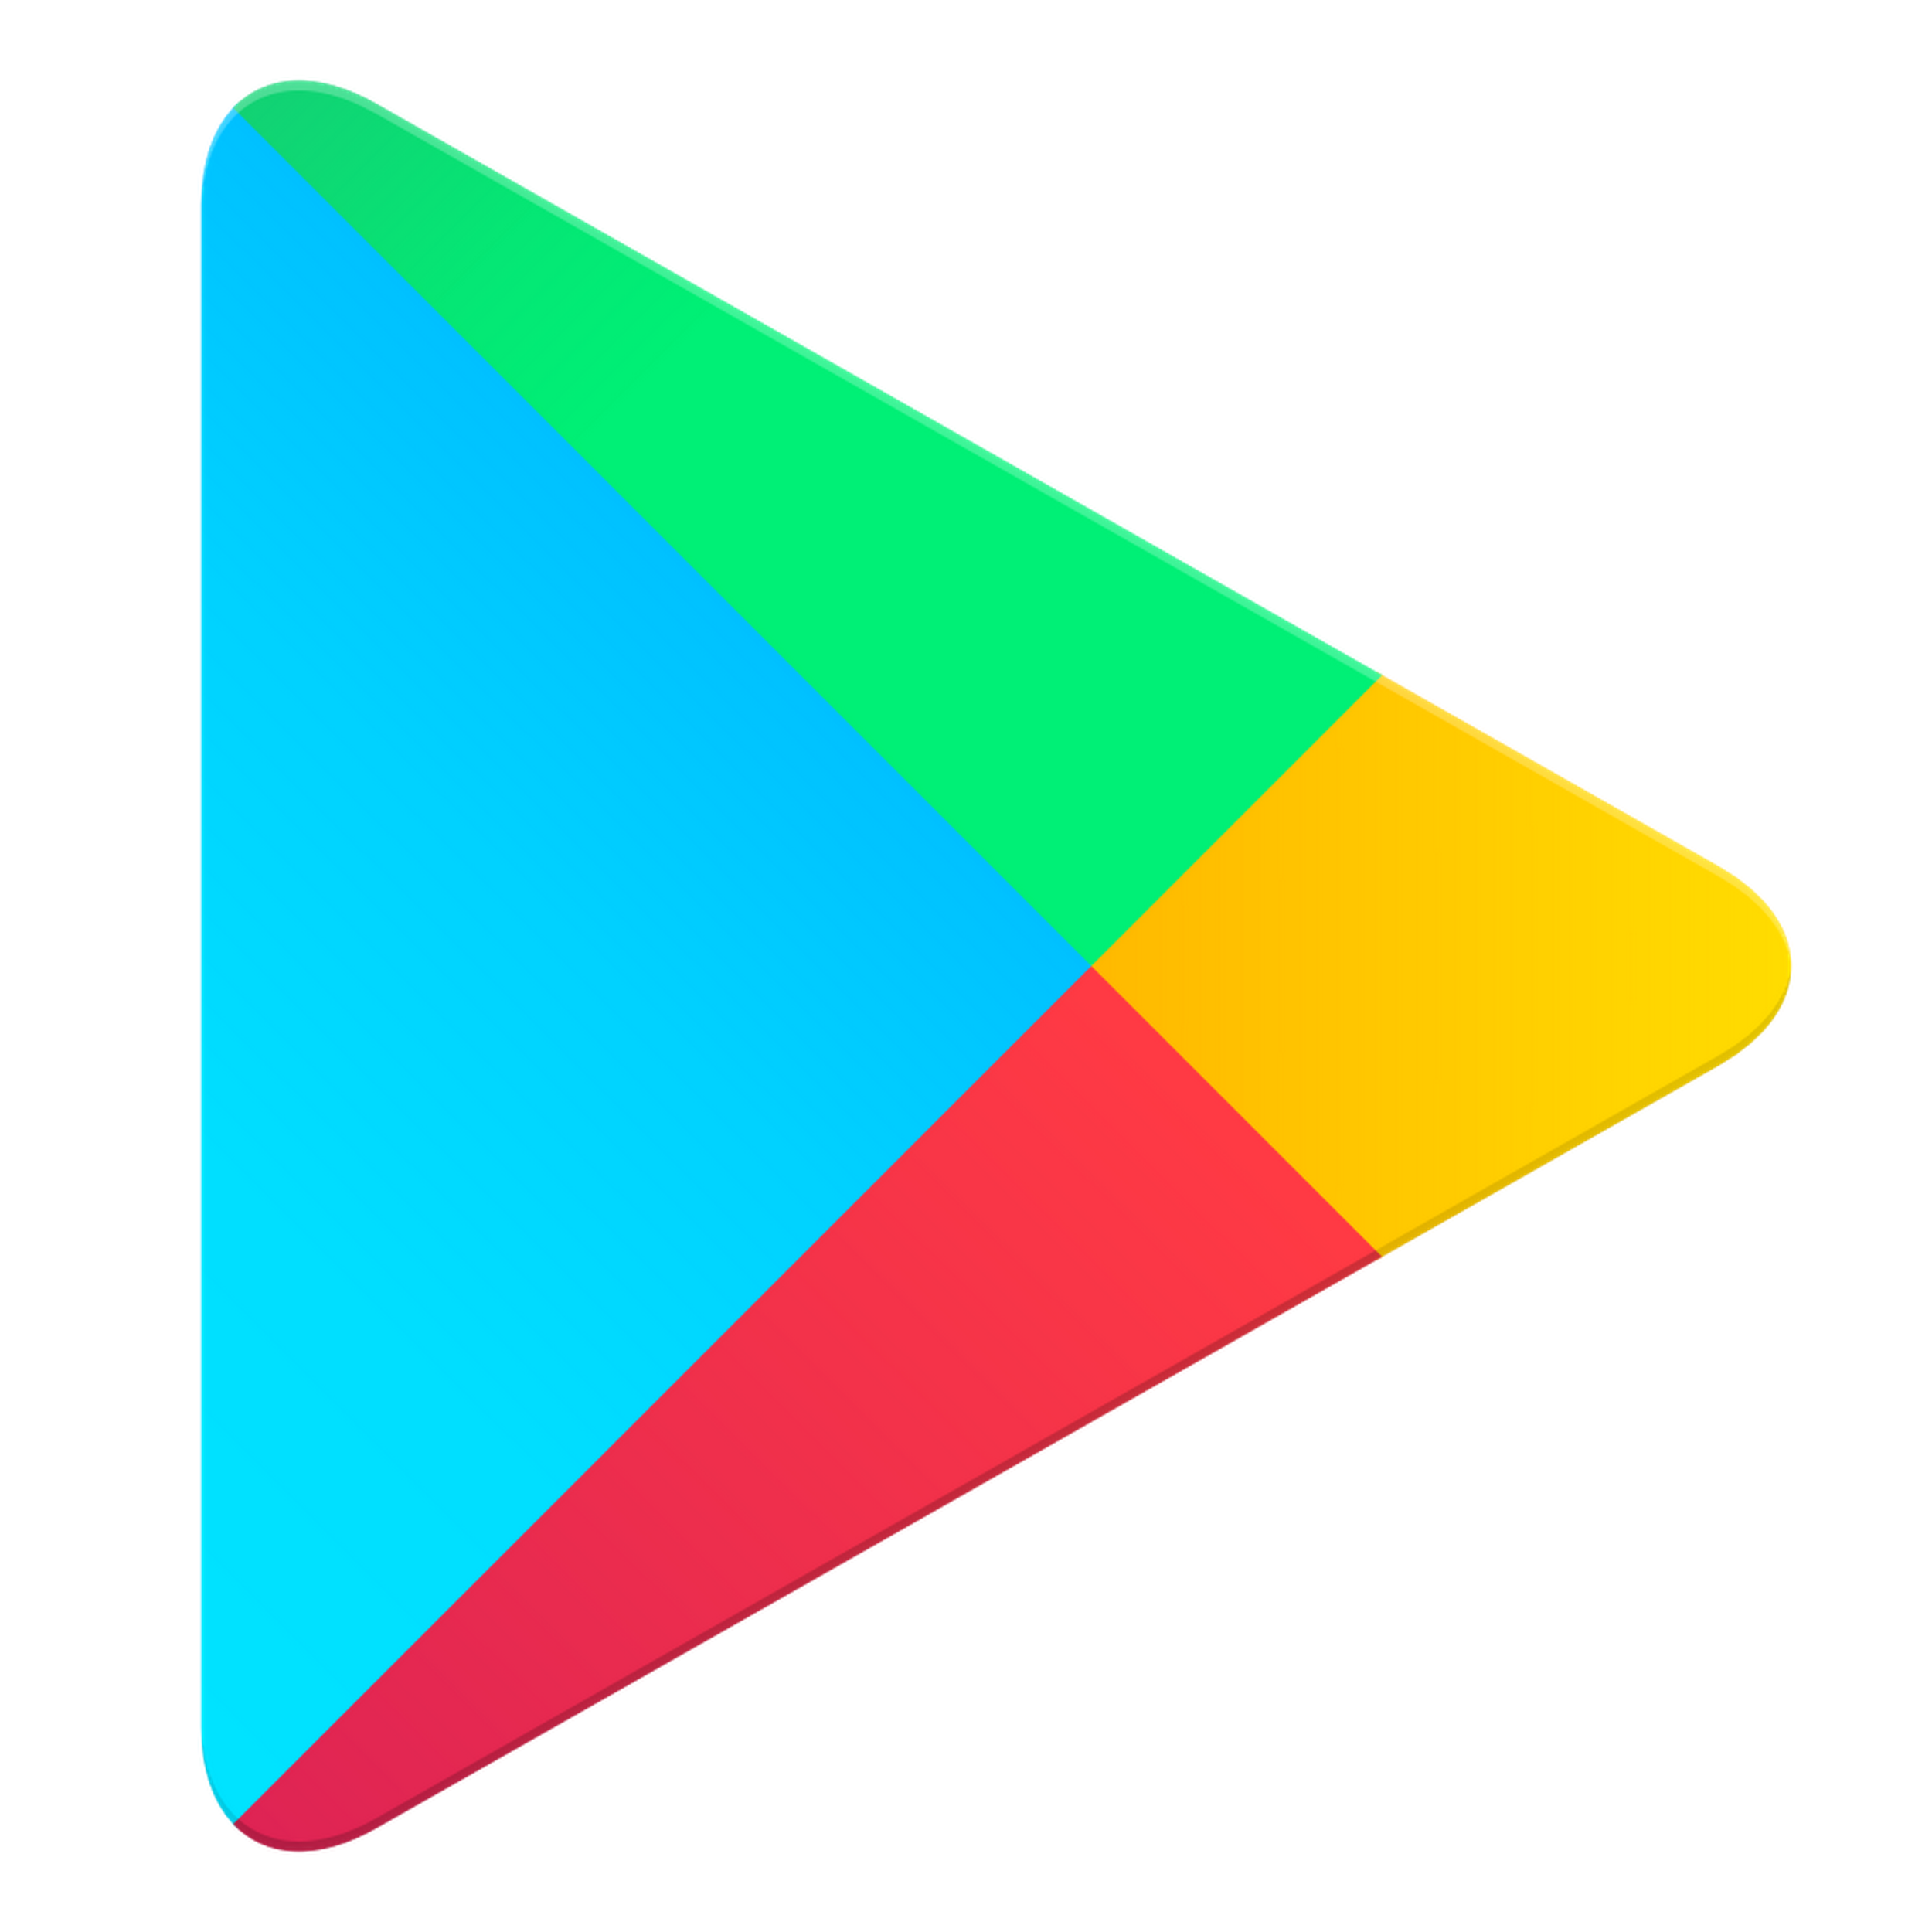 Google_Play_Prism.max-2800x2800.png